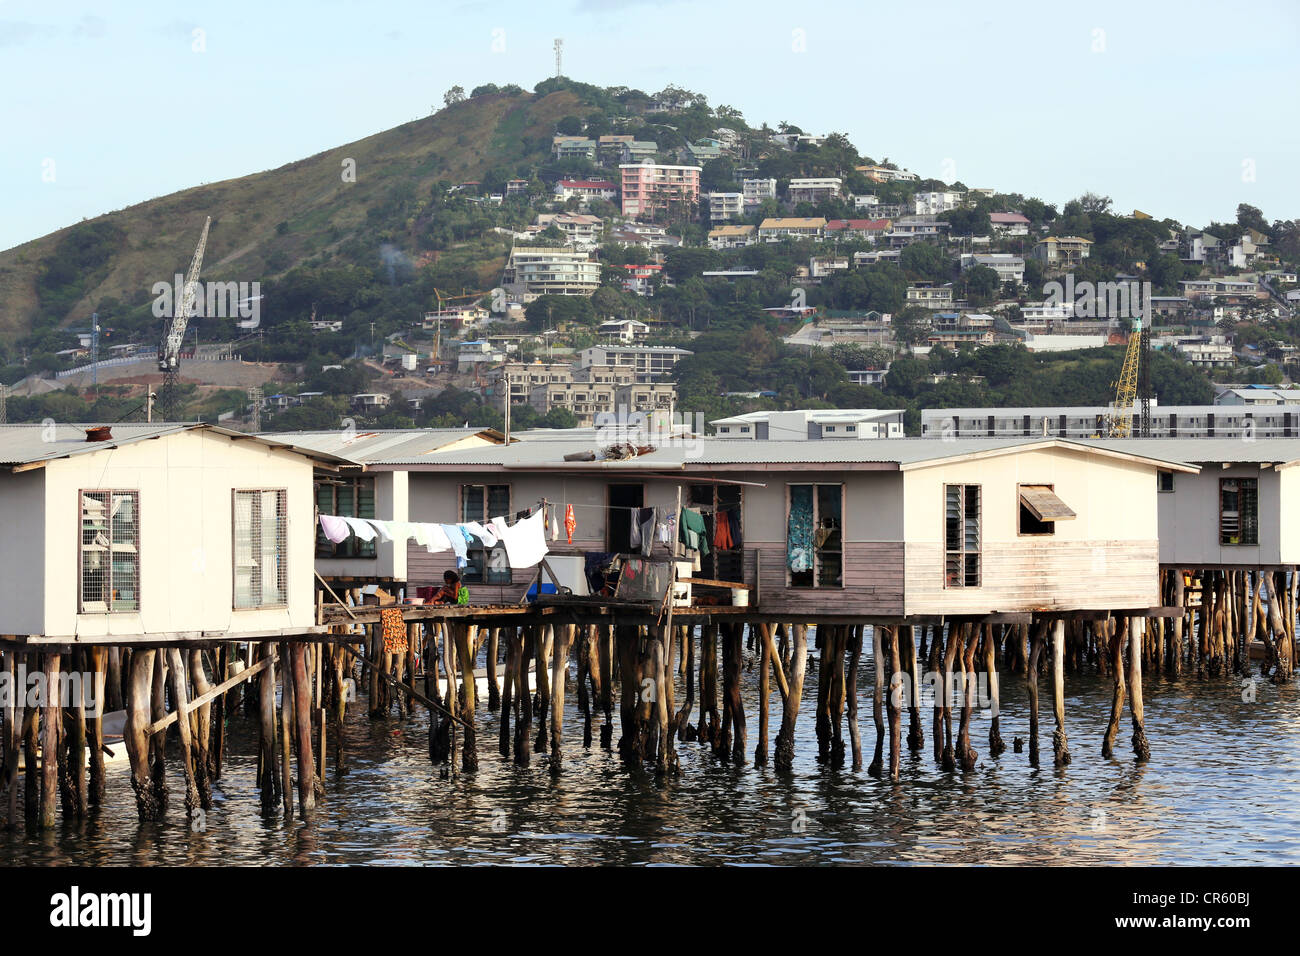 Houses on stilts, Port Moresby, Capitol of Papua New Guinea - Stock Image